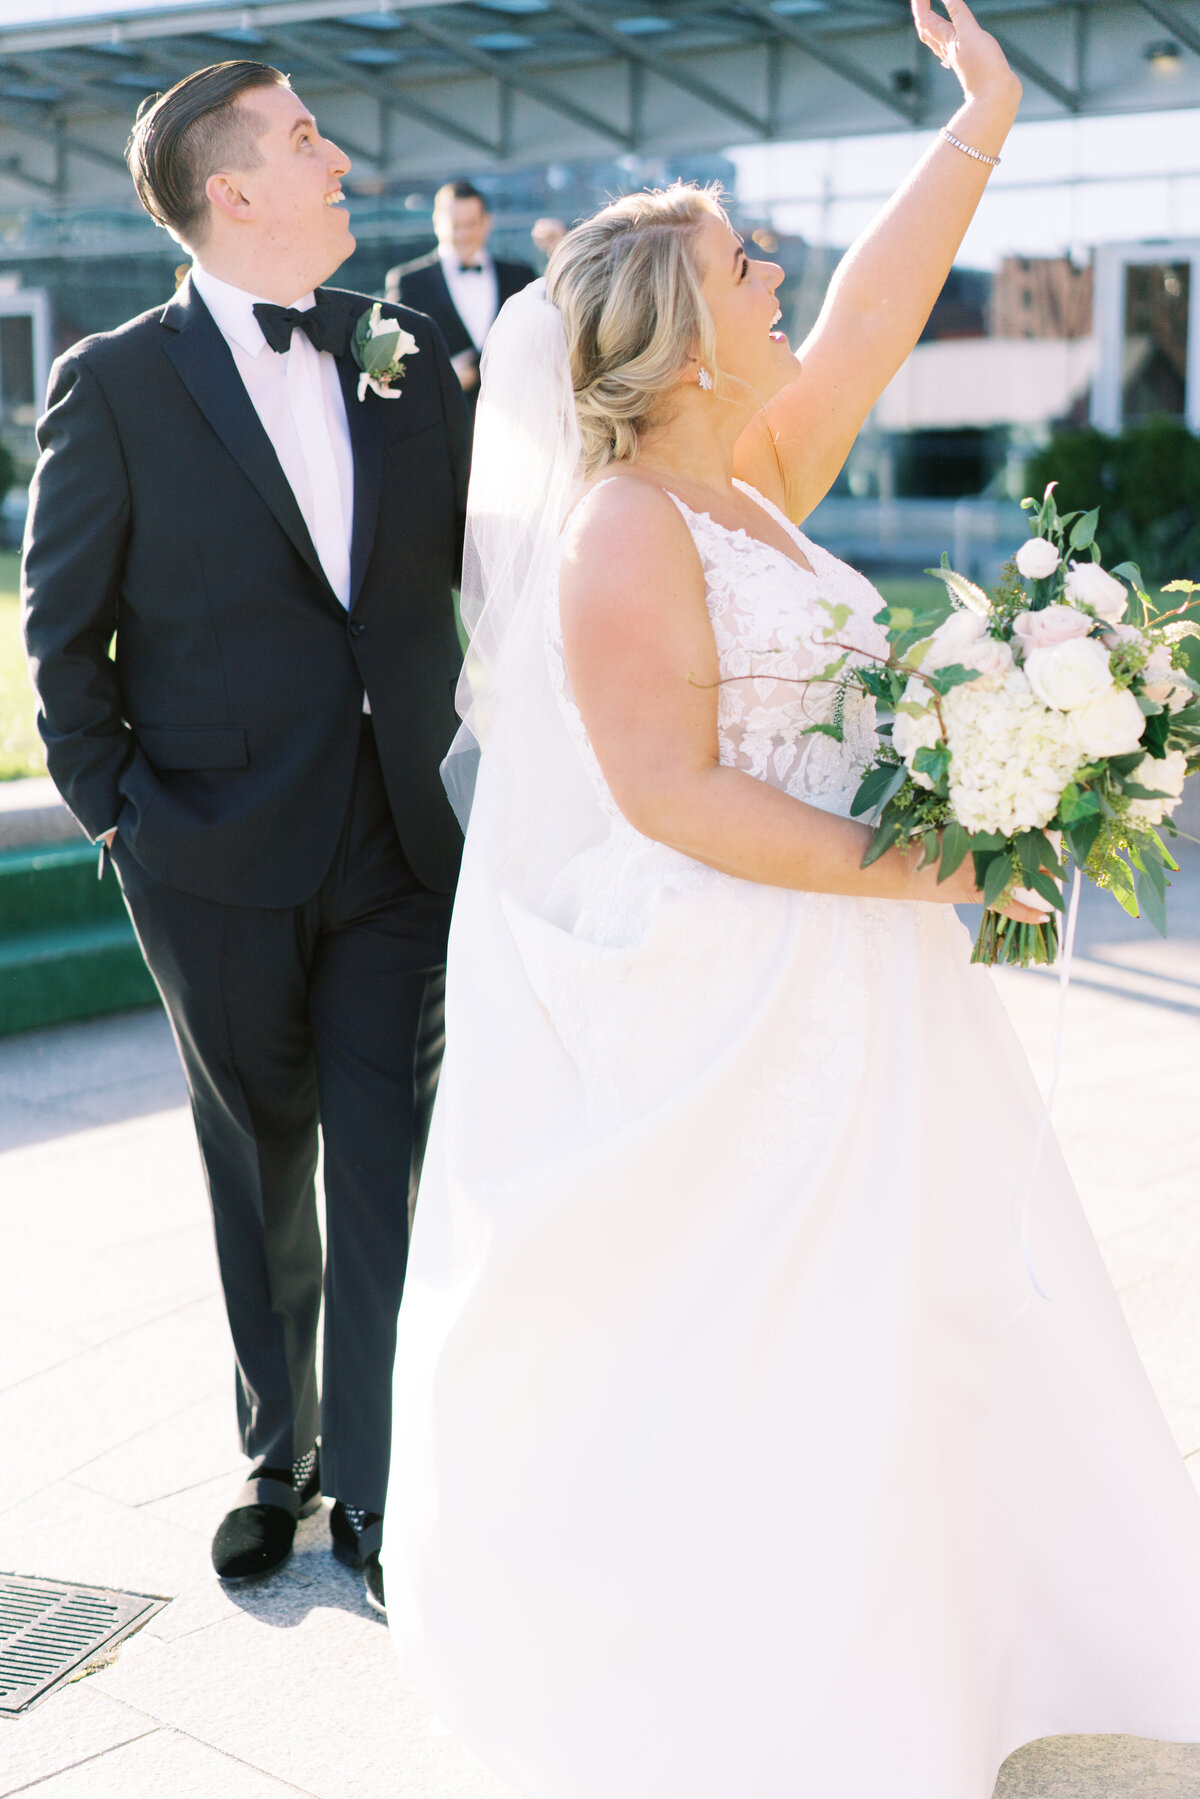 MarcelaPloskerPhotography|StateRoomWedding|Alissa&Chris-404